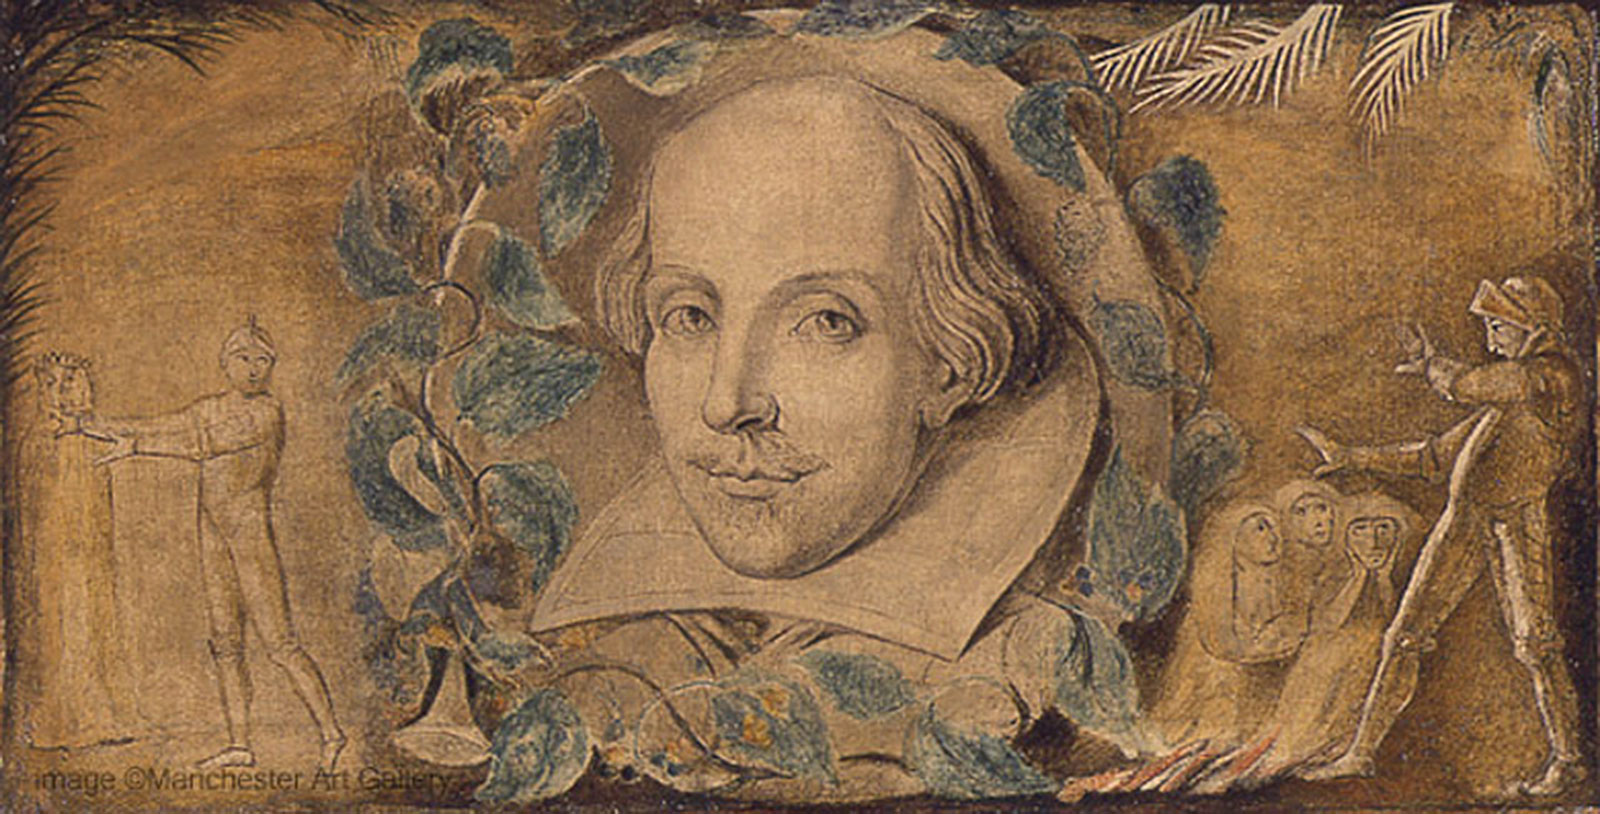 To be Shakespeare or not to be Cervantes